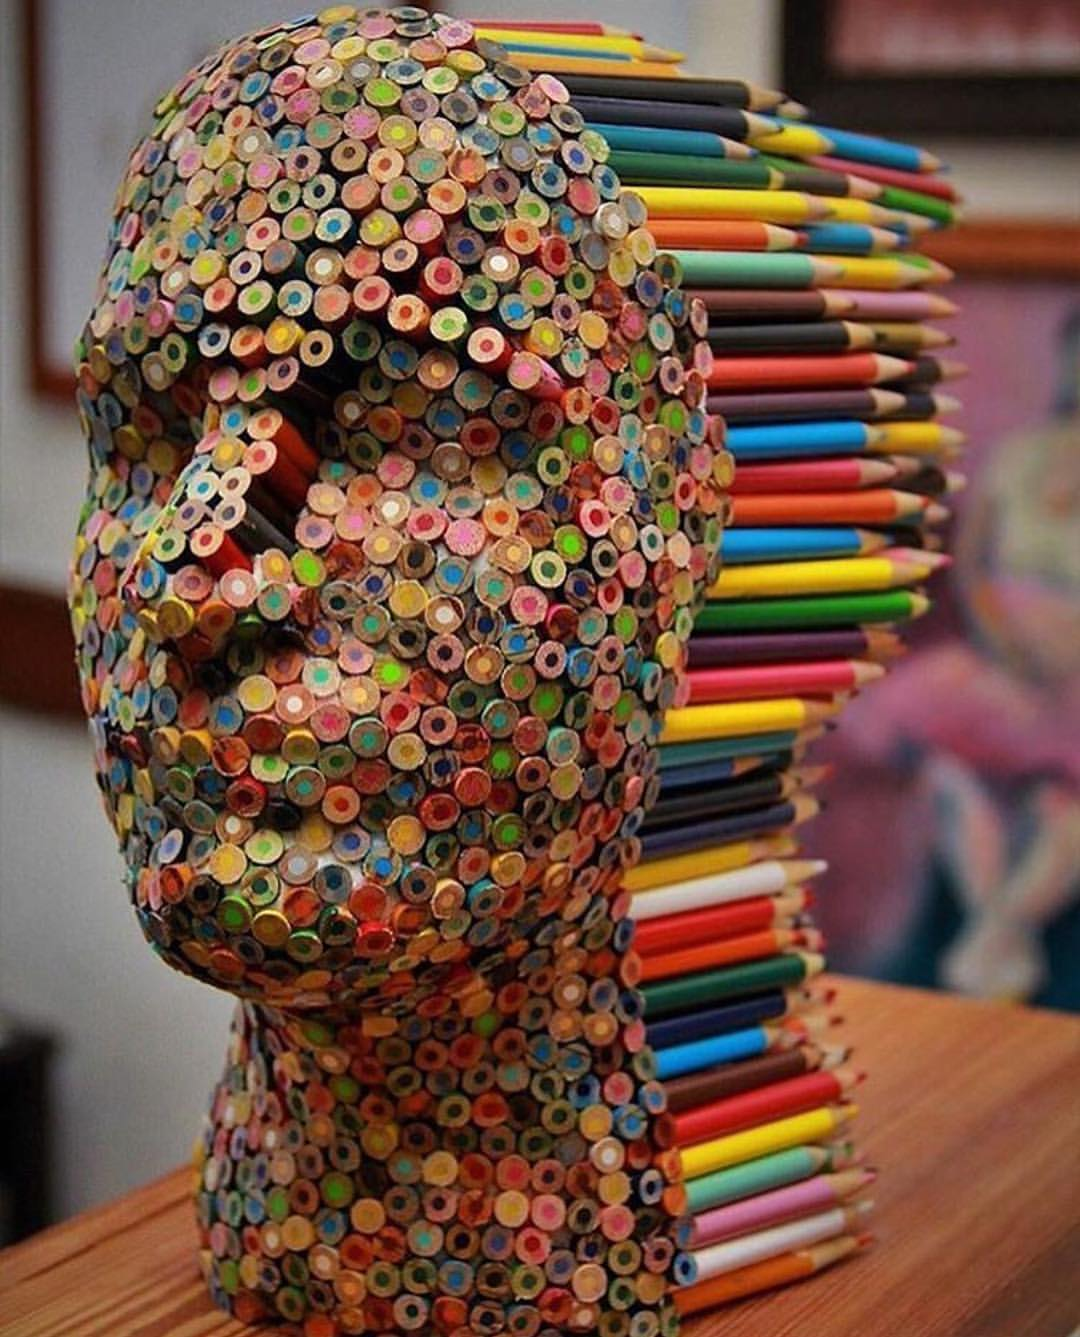 Mira esta escultura de un rostro hecho de l pices de colores for 3d art sculpture ideas